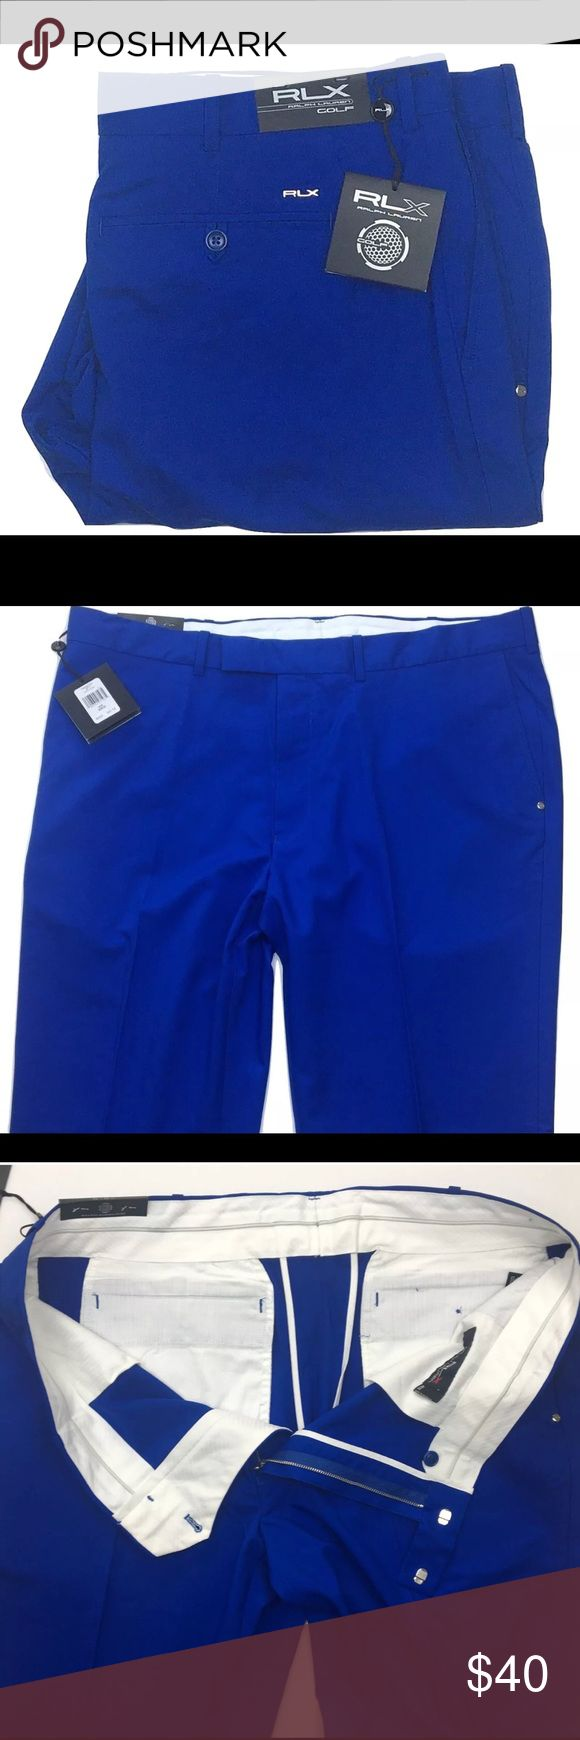 """NWT Ralph Lauren RLX Golf pants A pair of new with tags Ralph Lauren RLX Golf pants. Blue color and size 40Wx32L.  Dimensions:  Length:- 44"""" Inseam:- 31"""" Waist:- 20.5 (41"""" in total - 40"""" on tag)  Thanks for viewing! Ralph Lauren Pants"""